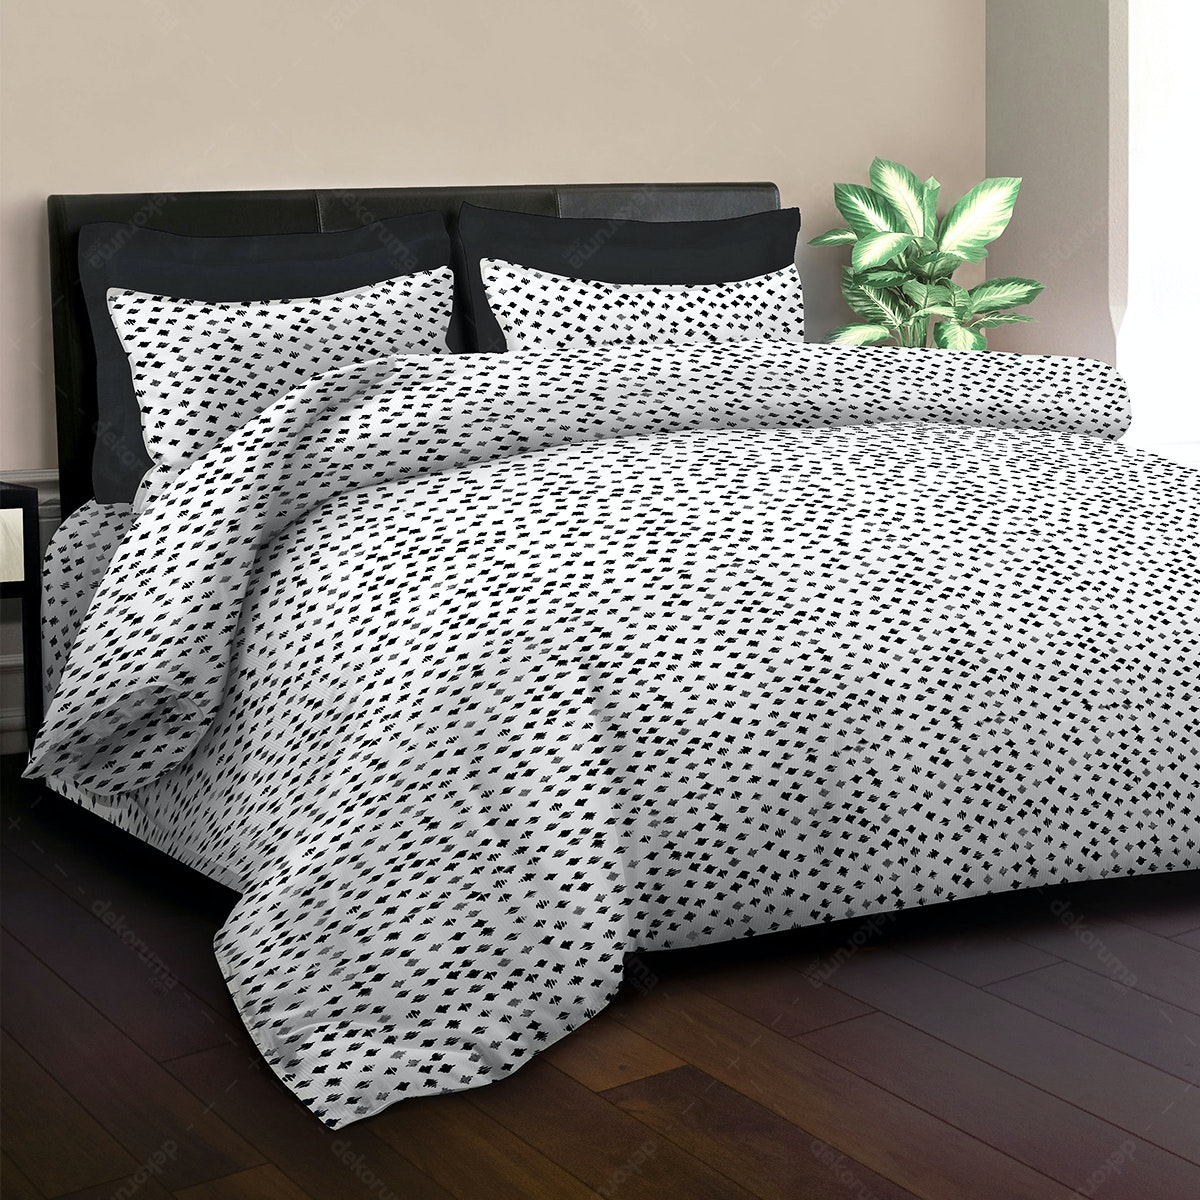 King Rabbit Bed Cover Autograph Sign Hitam 230x230cm